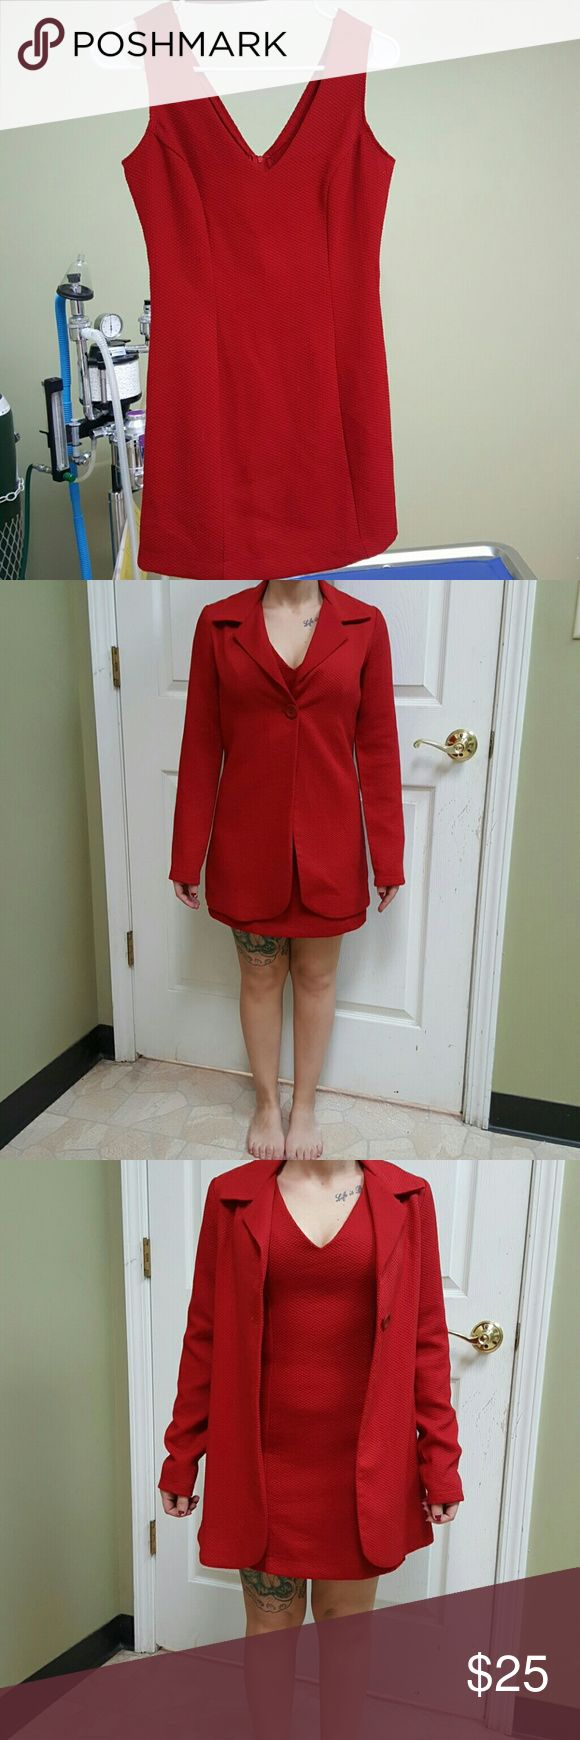 """Fredricks of Hollywood size 2 dress Red party dress 29"""" shoulder to bottom (jacket approximately 31"""") bust approx 29"""" hips approx 32"""" Fredricks of hollywood  Dresses Mini"""